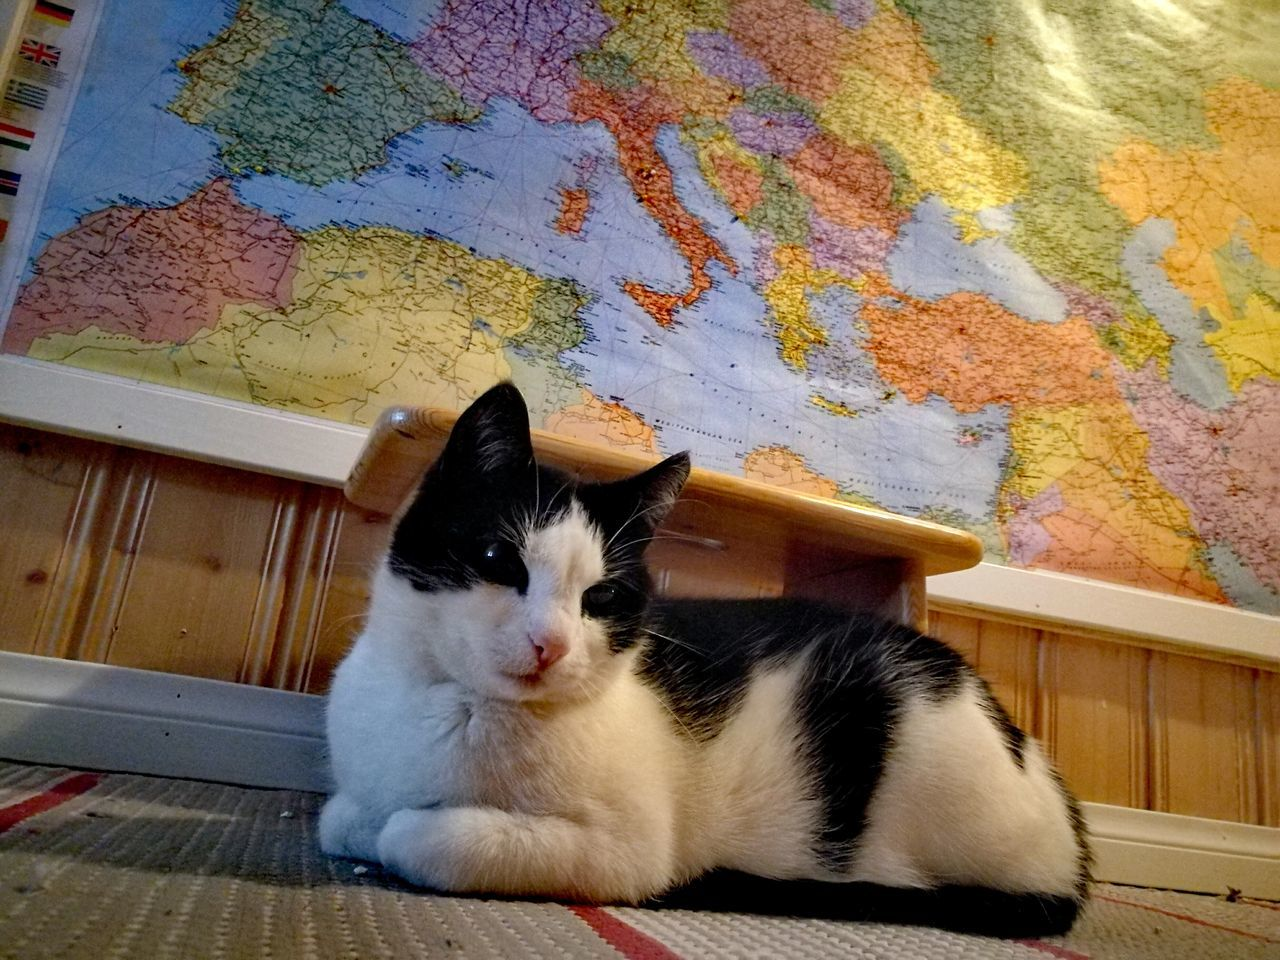 Dreaming about Italy? Pets Domestic Animals Domestic Cat Animal Themes One Animal Mammal No People Feline Cat Multi Colored Indoors  Day Close-up Map Mediterranean Sea